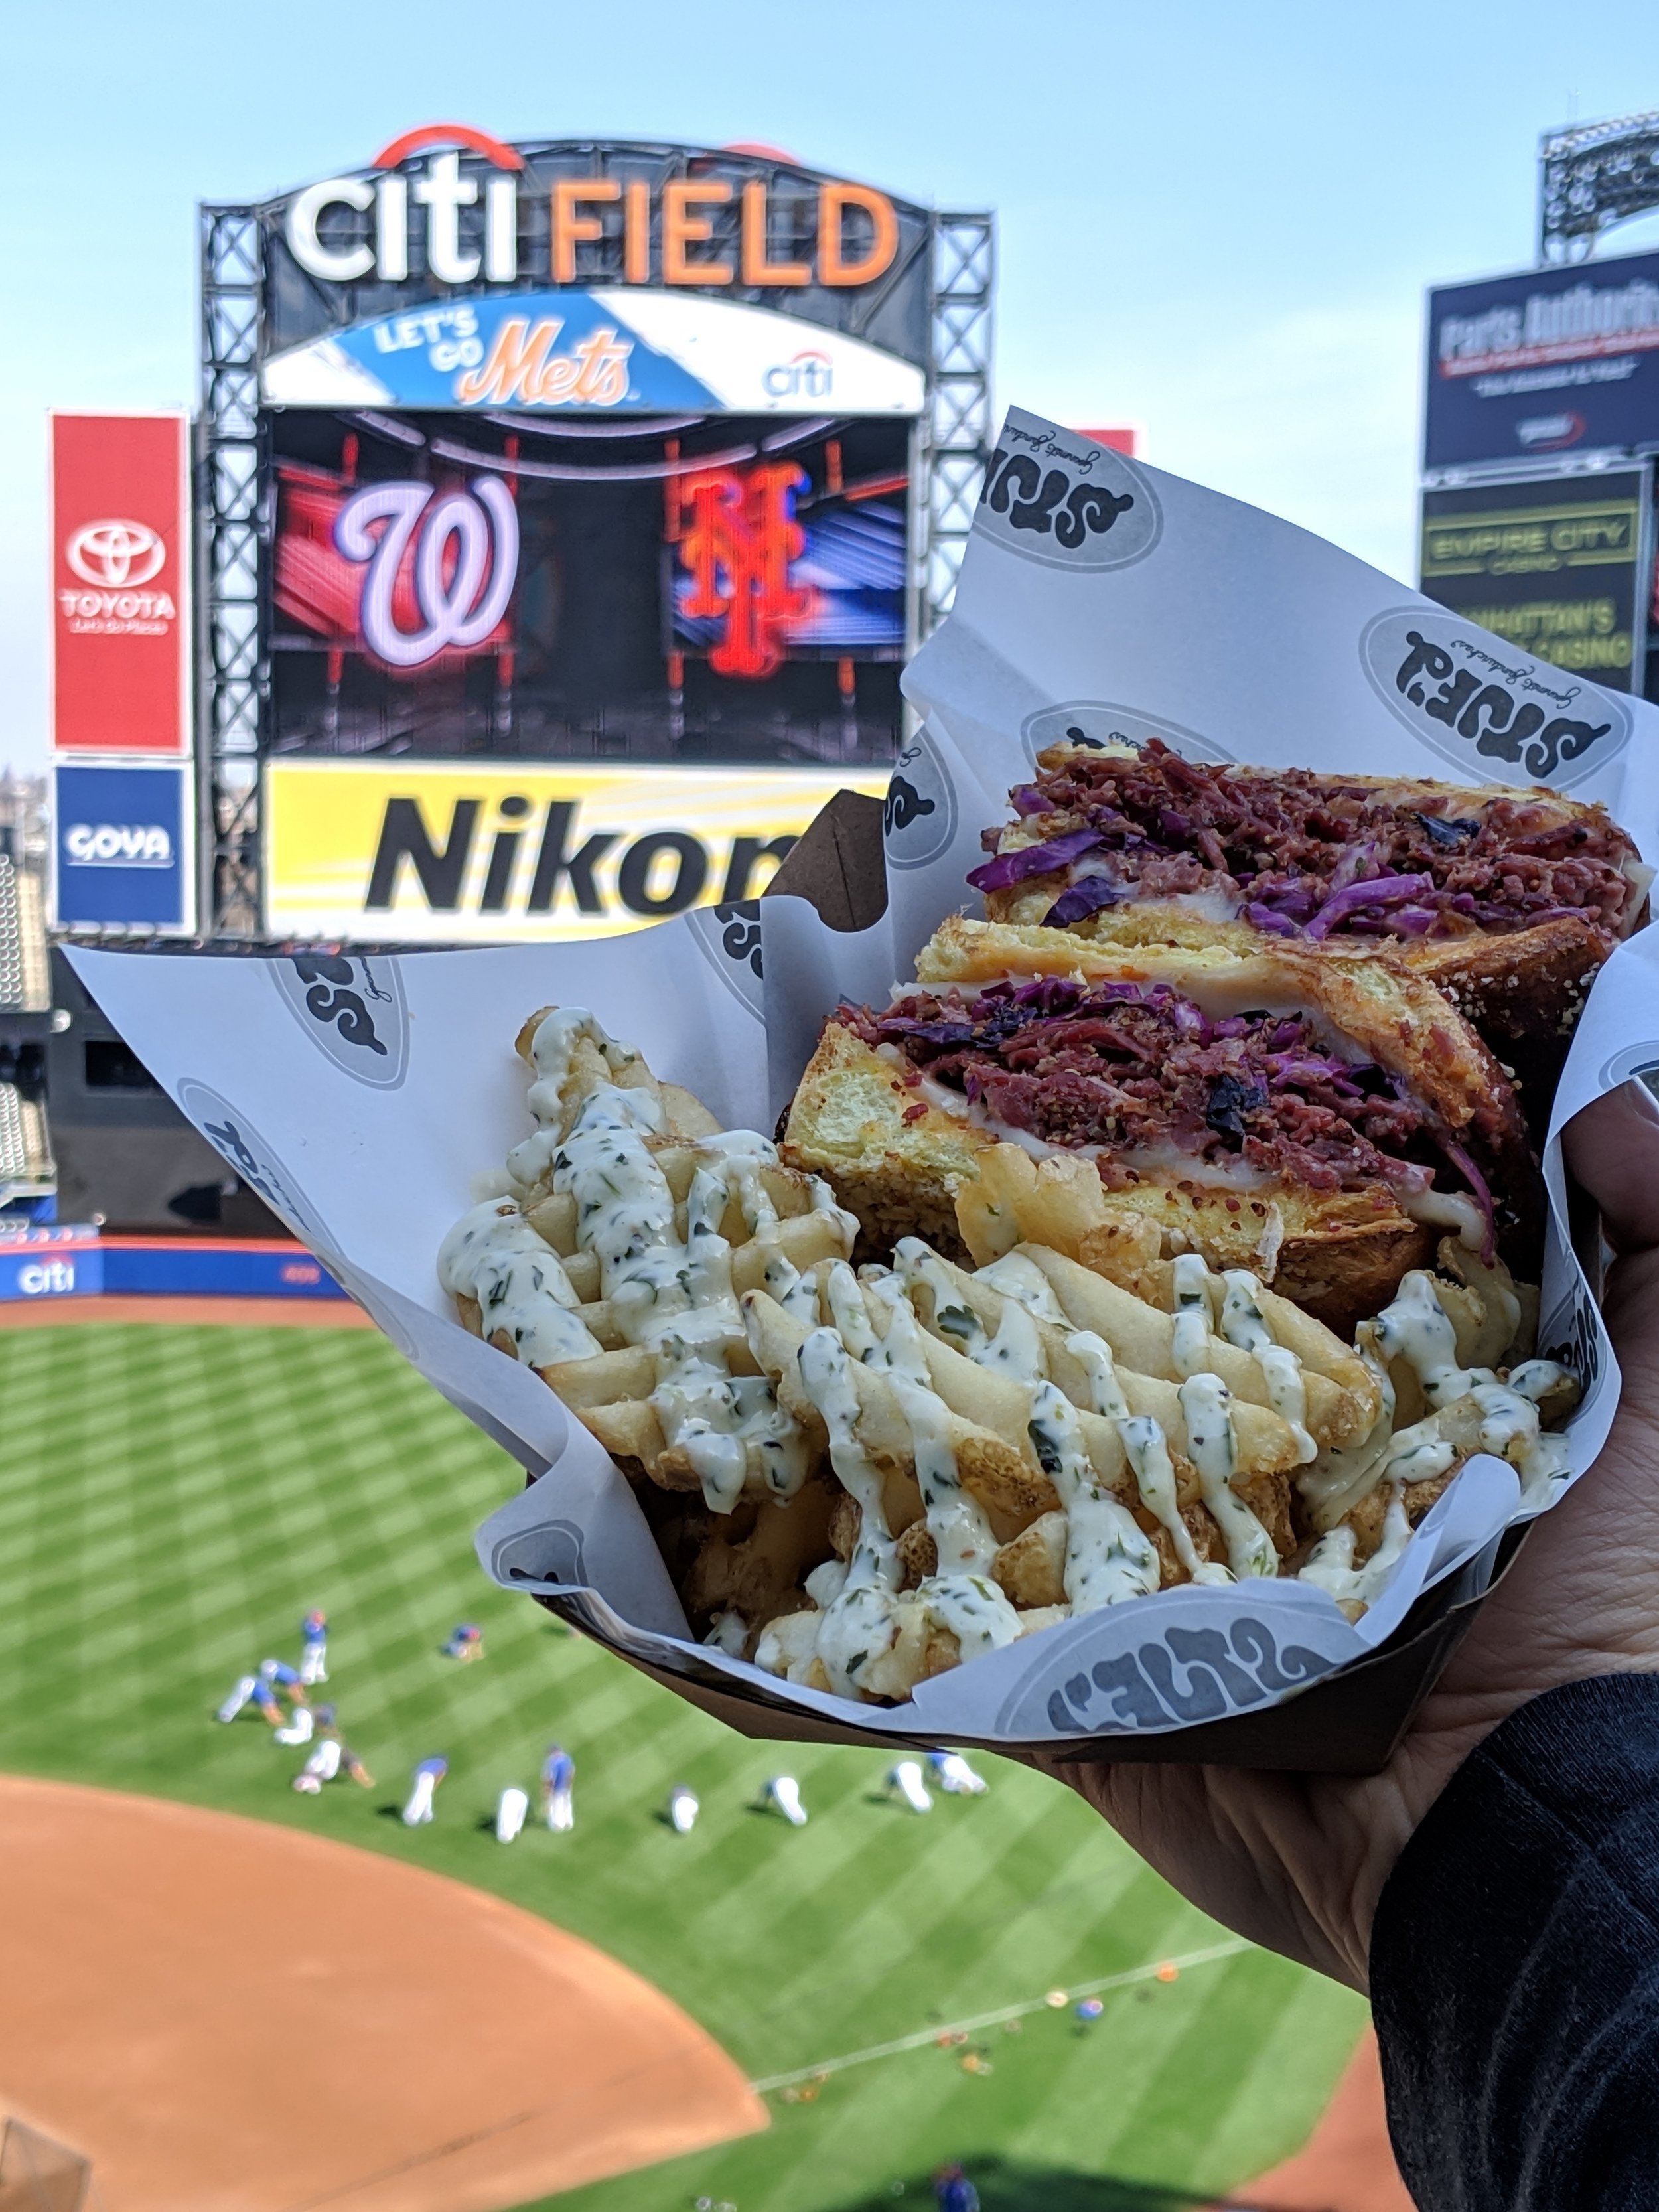 Come find us in the Jim Beam Promenade level suite between sections 416 and 409! EAT OUR REUBEN, EXCLUSIVE TO THE STADIUM :D